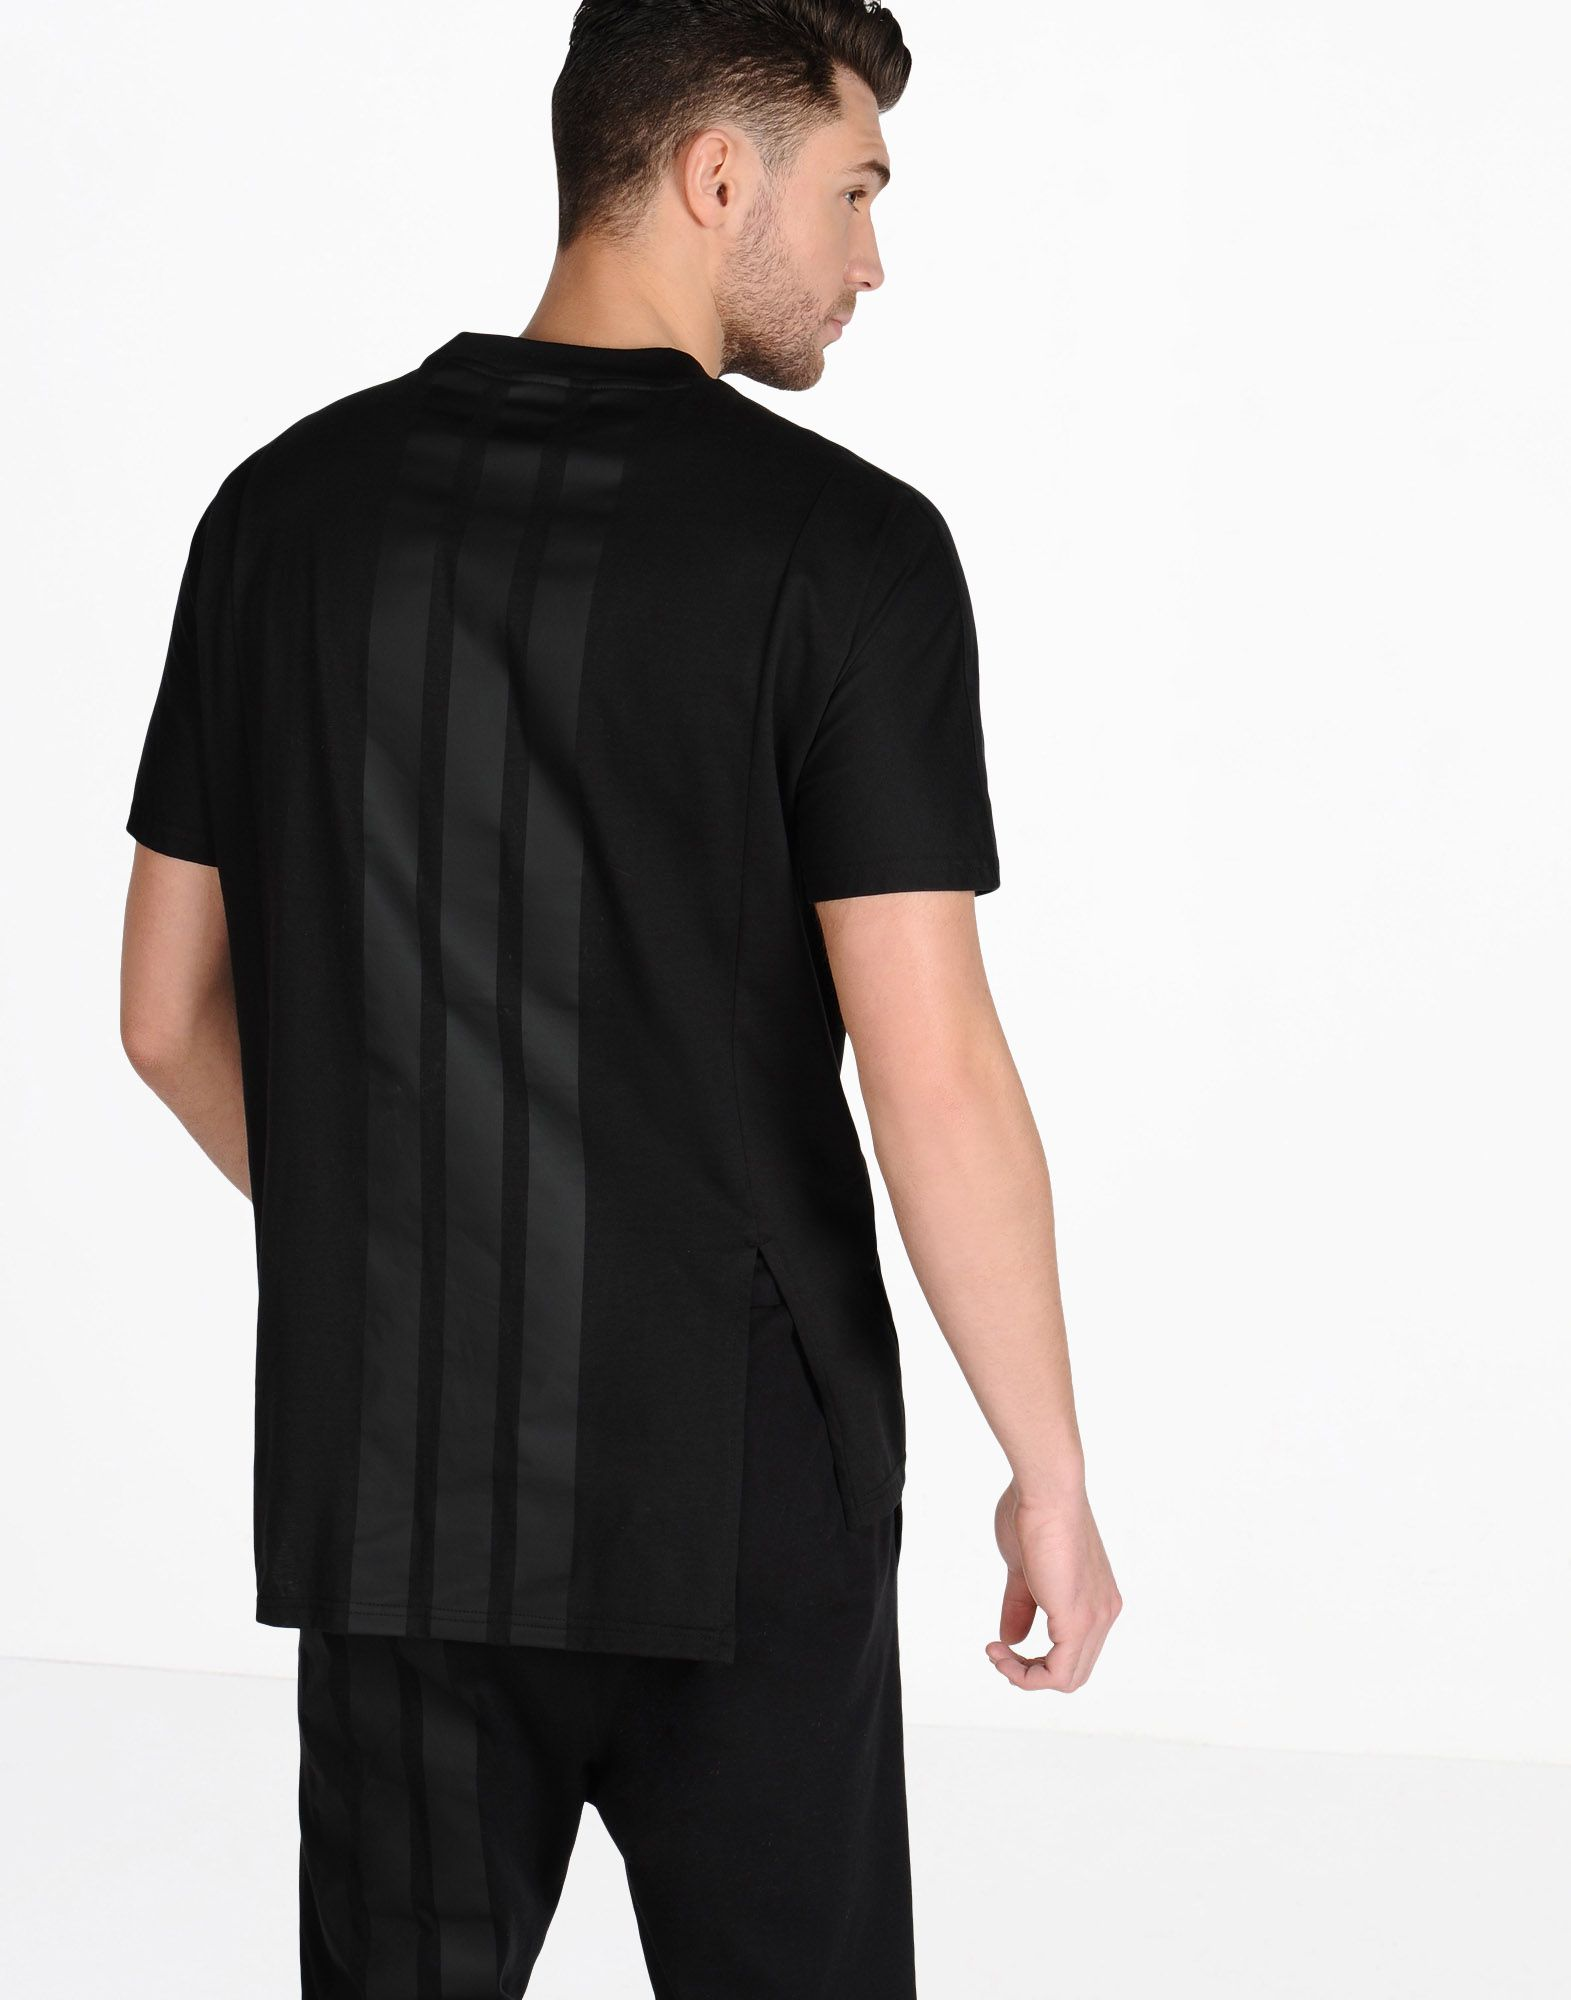 Black quilted t shirt -  Y 3 3 Stripes Tee Tees Polos Man Y 3 Adidas